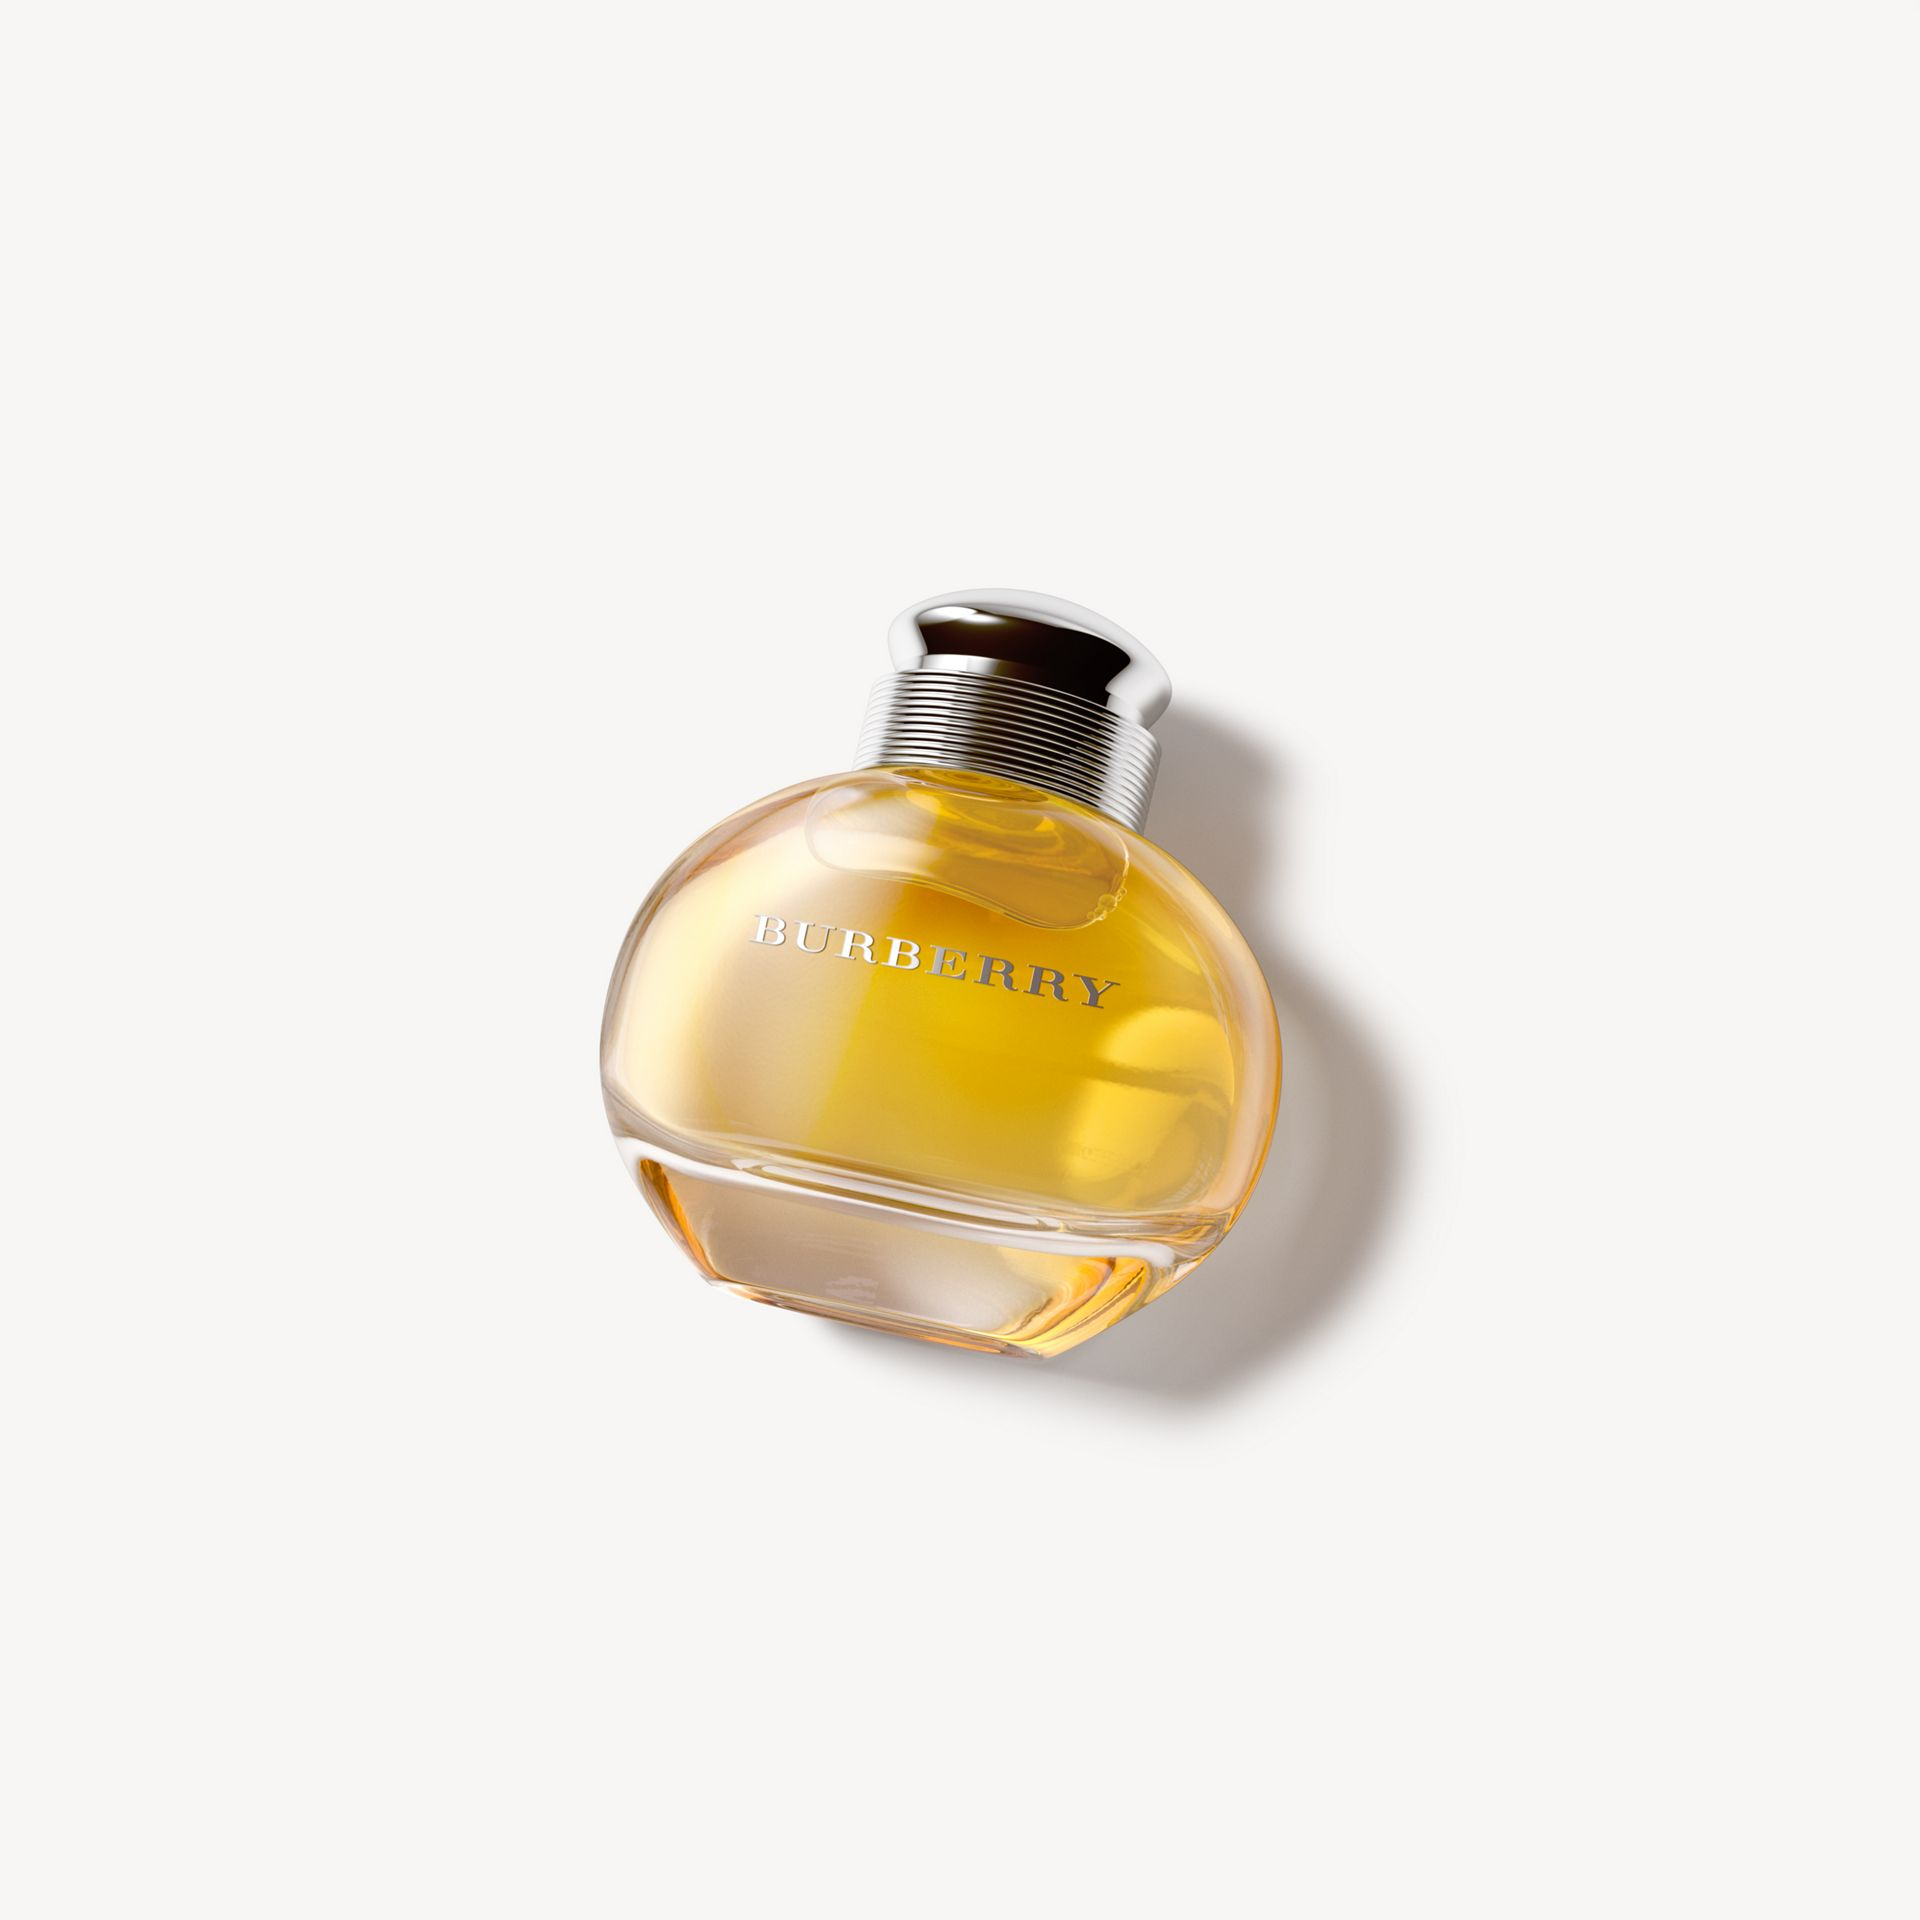 Burberry For Women Eau de Parfum 50 ml - Femme | Burberry - photo de la galerie 1